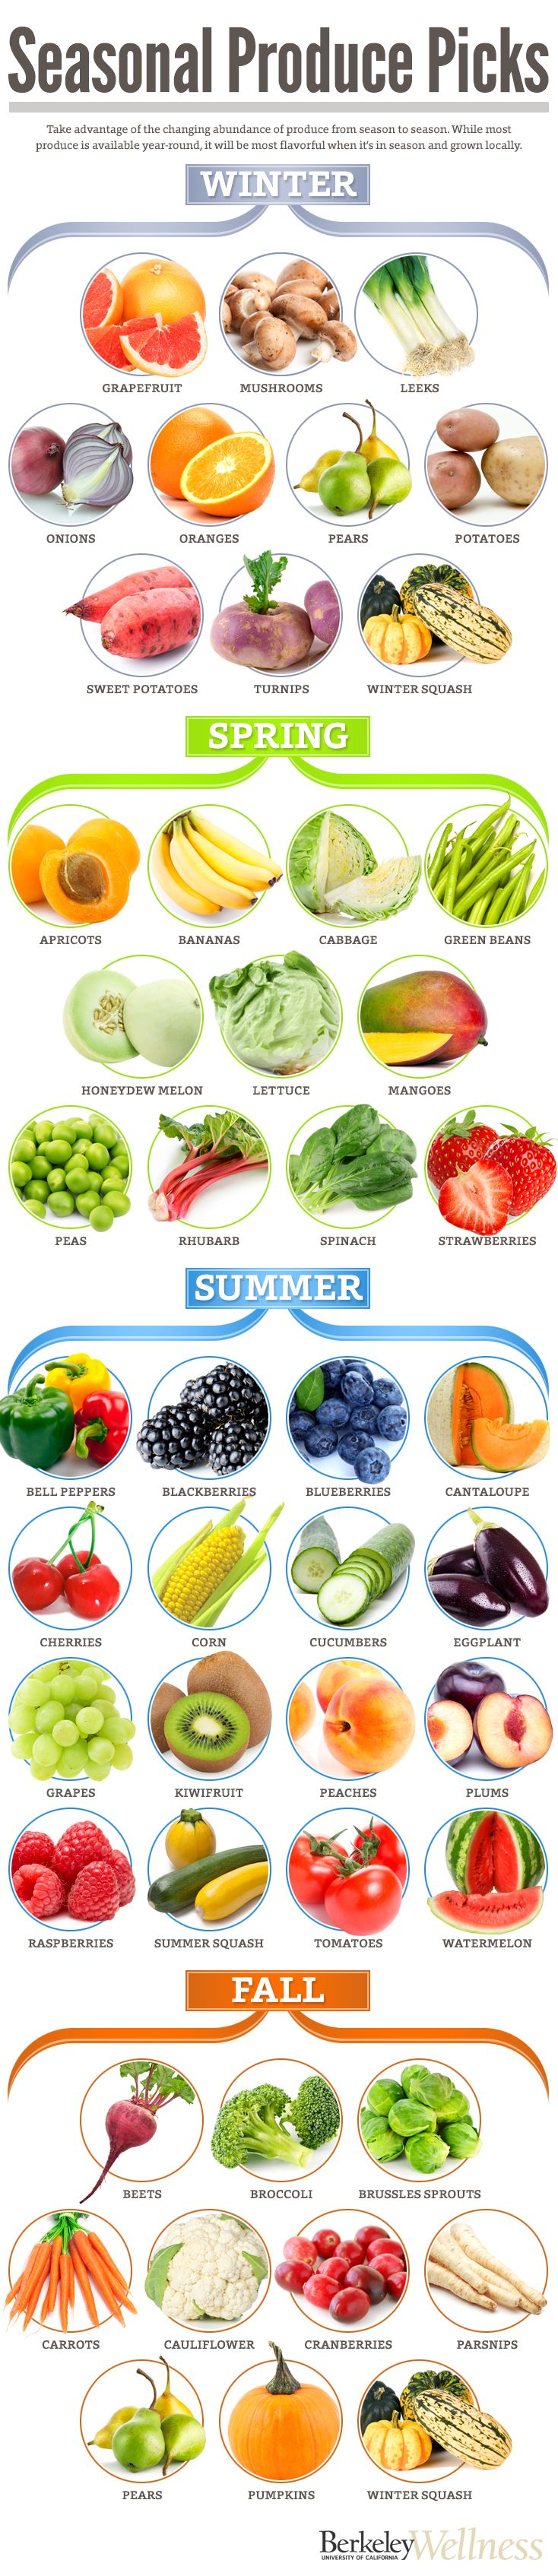 Seasonal fruits and veggies